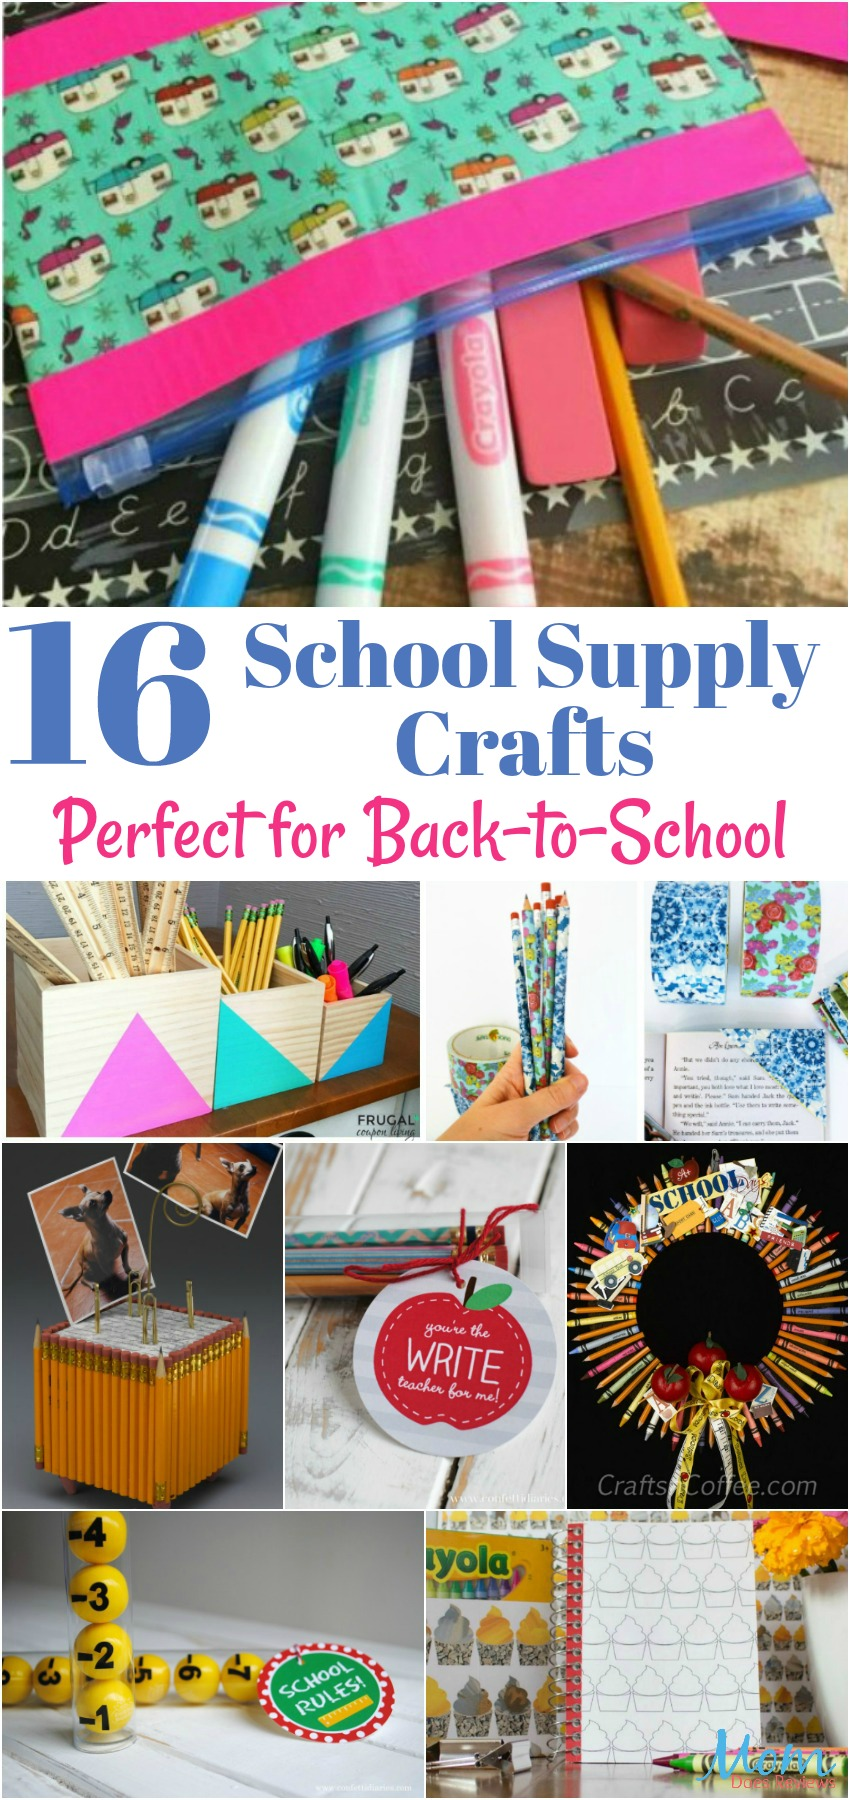 16 School Supply Crafts Perfect for Back-to-School banner